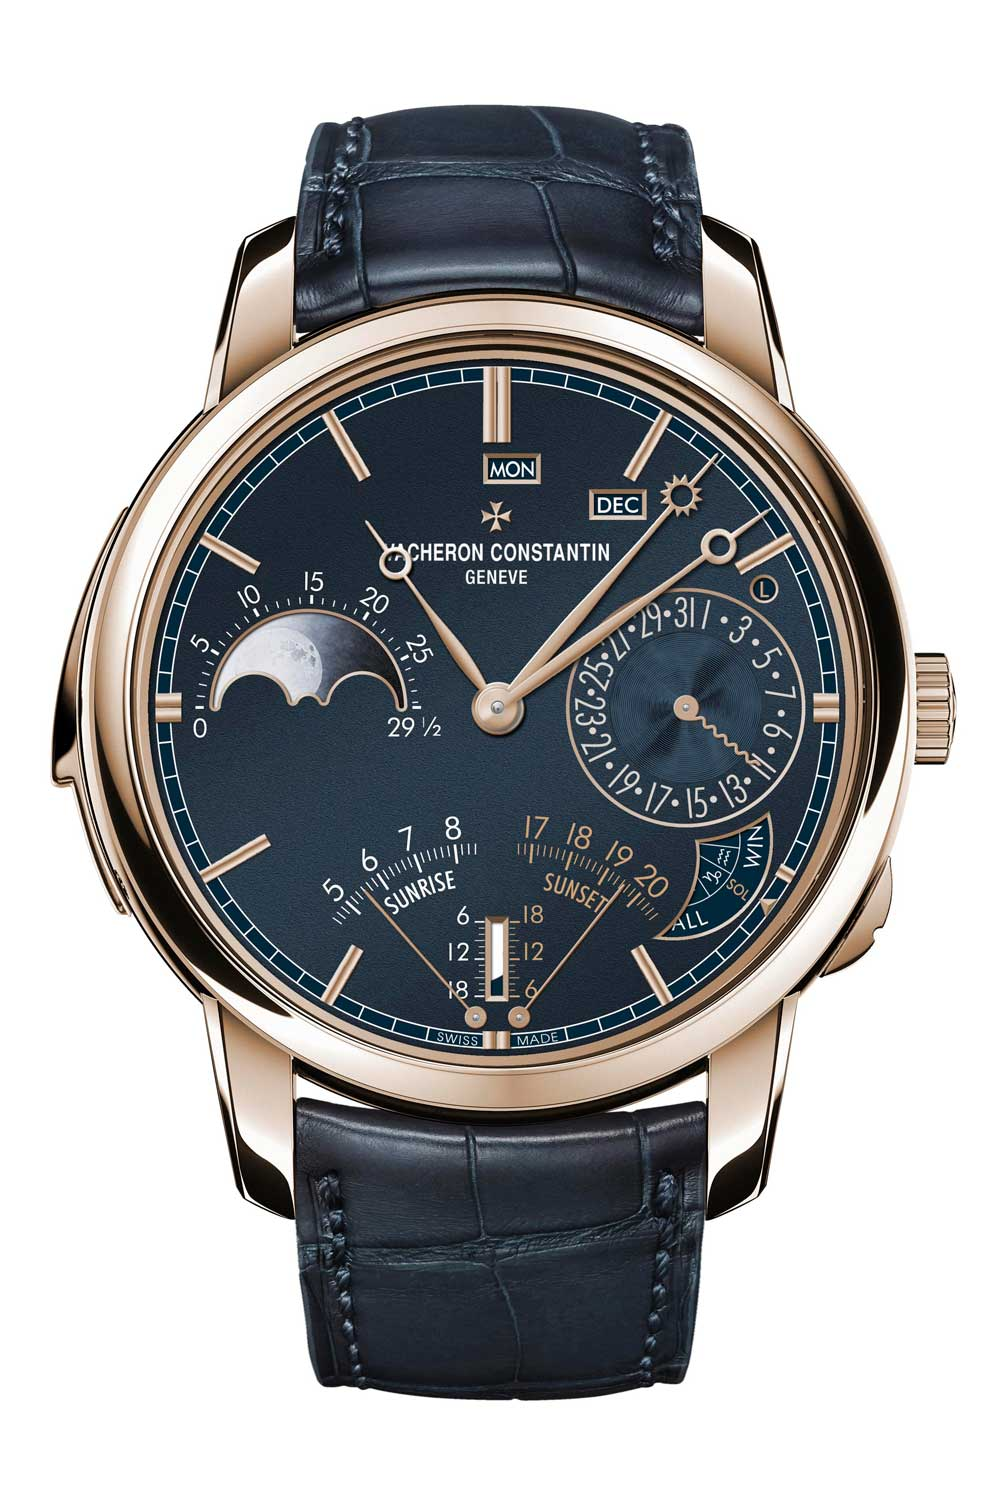 The display of the Les Cabinotiers Astronomical Striking Grand Complication is incredibly easy to read, despite its complexity